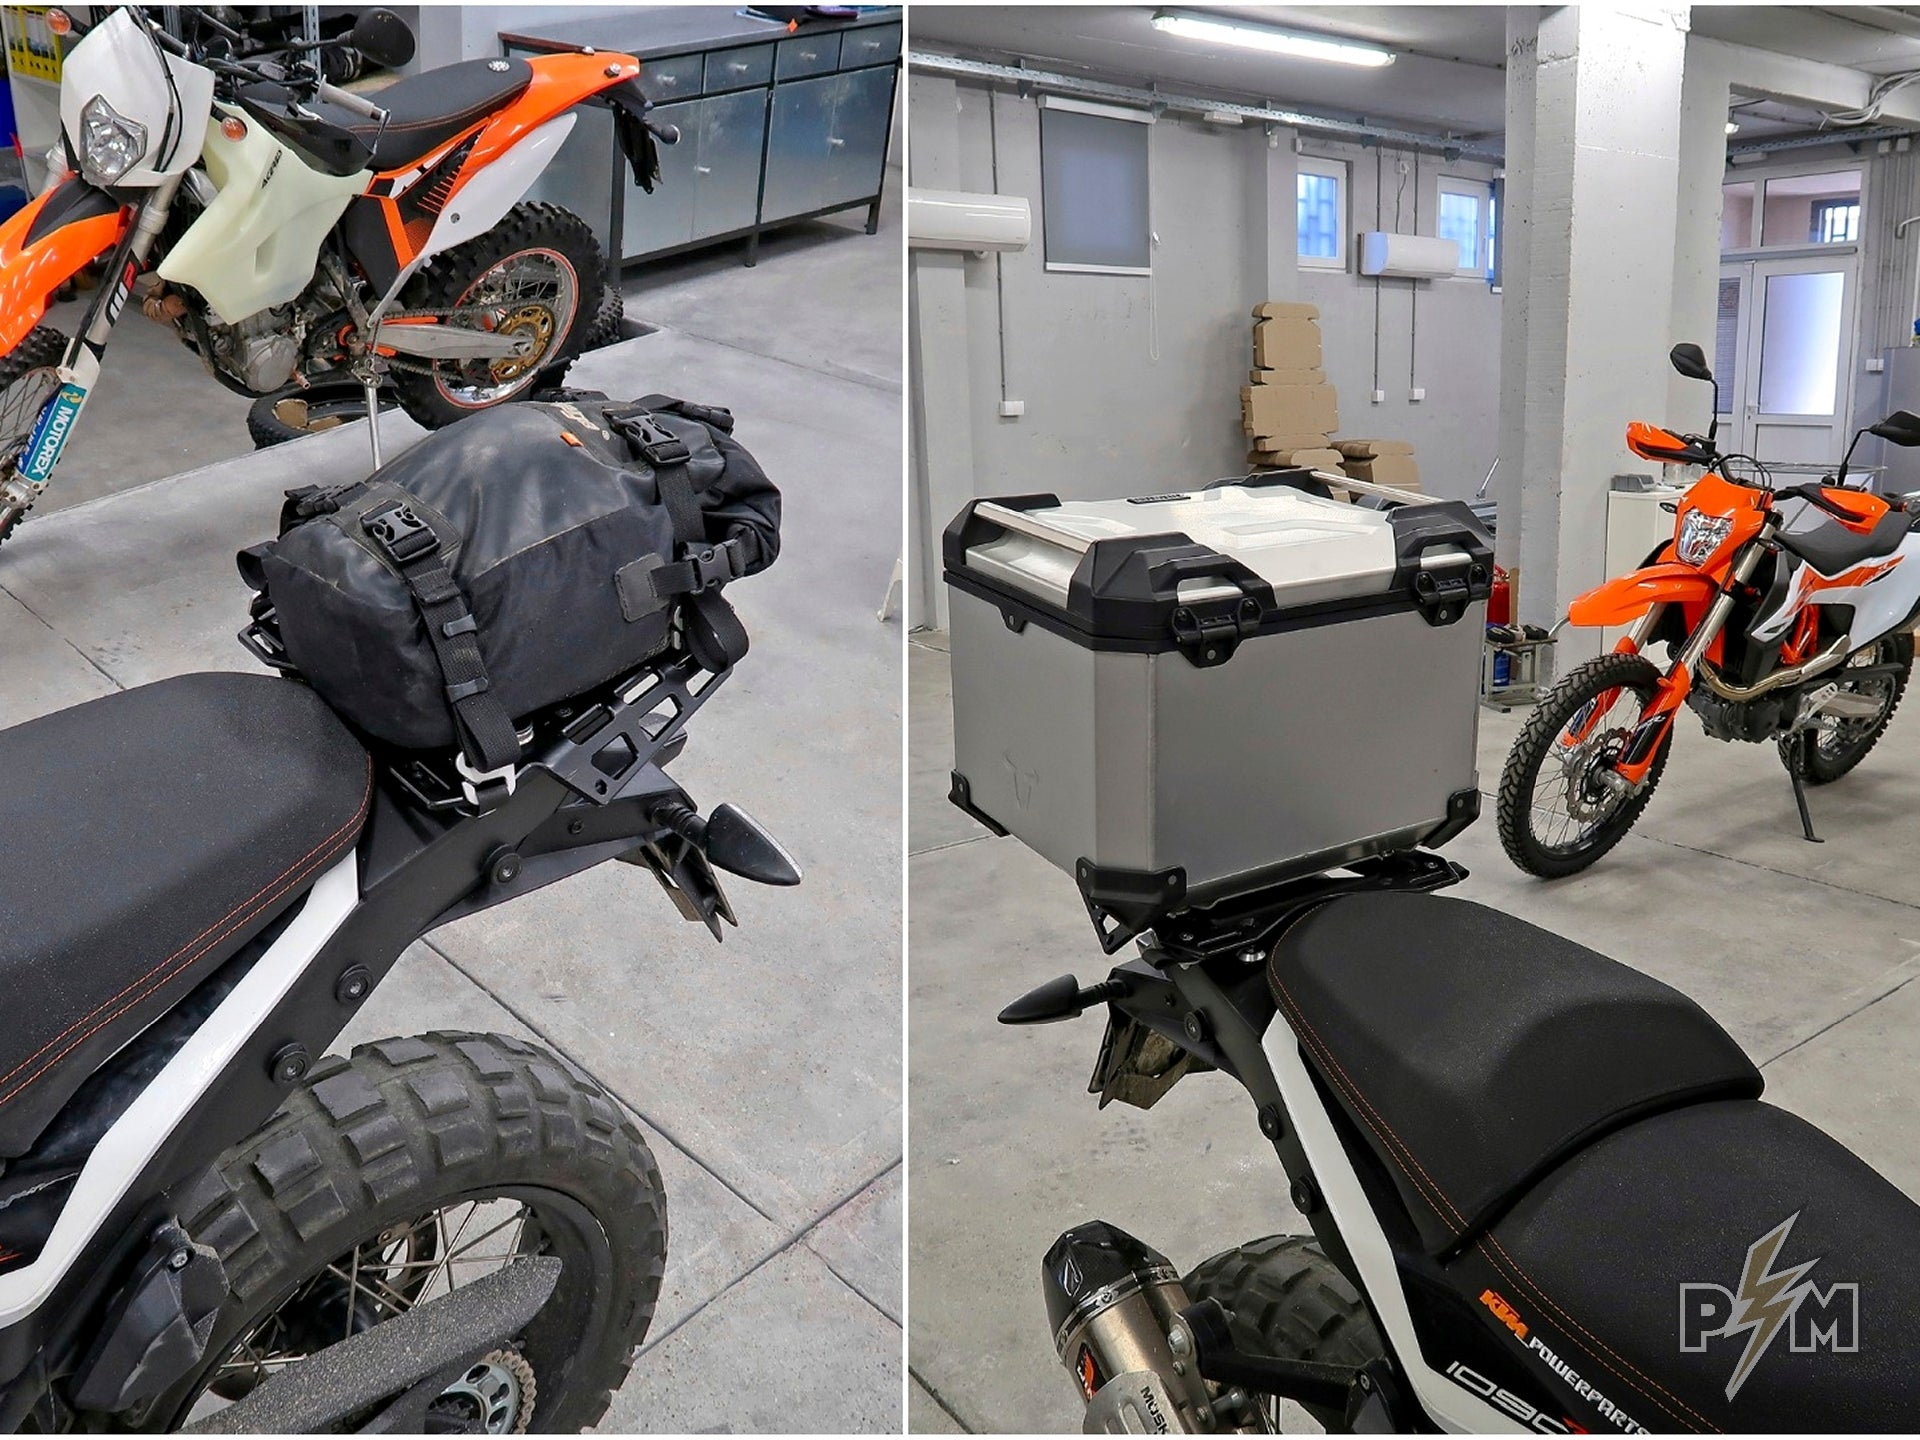 SW-Motech Trax 38l top case and Kriega US-20 on 1X90 Top luggage rack with Subplate